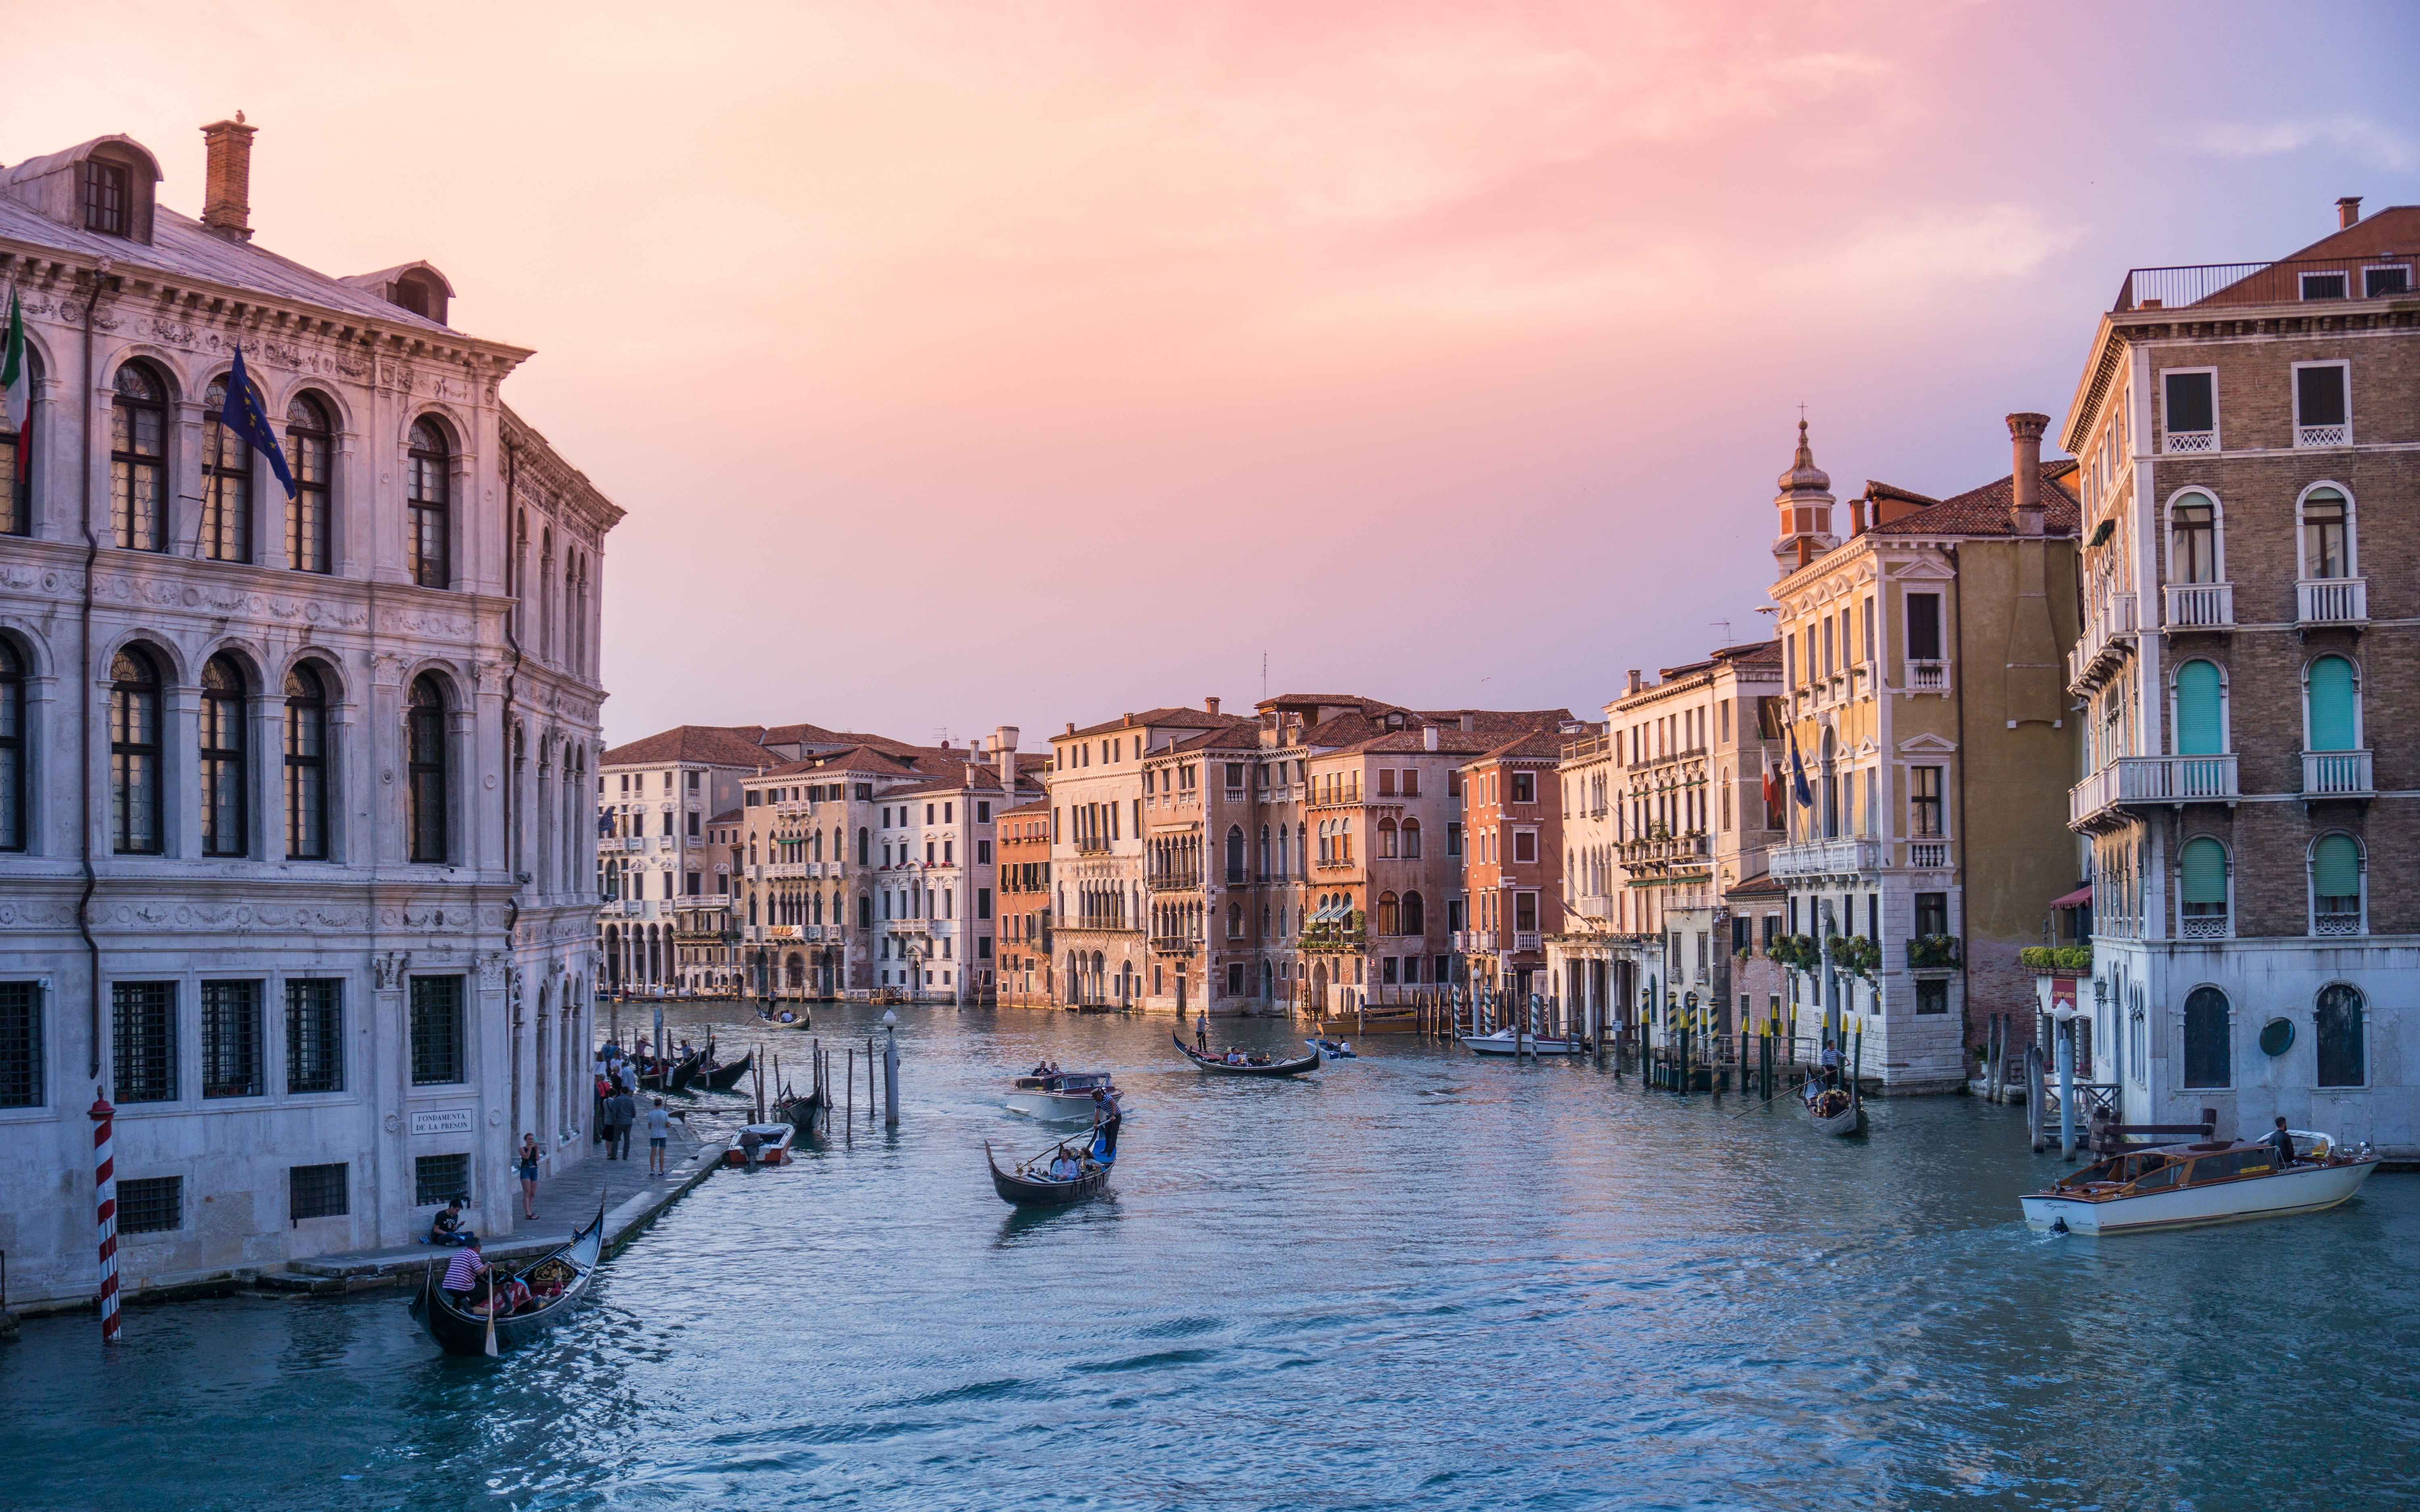 Venice is one of the classic destinations in Italy and almost unrivalled in terms of beauty. Read our guide to the best places in Italy